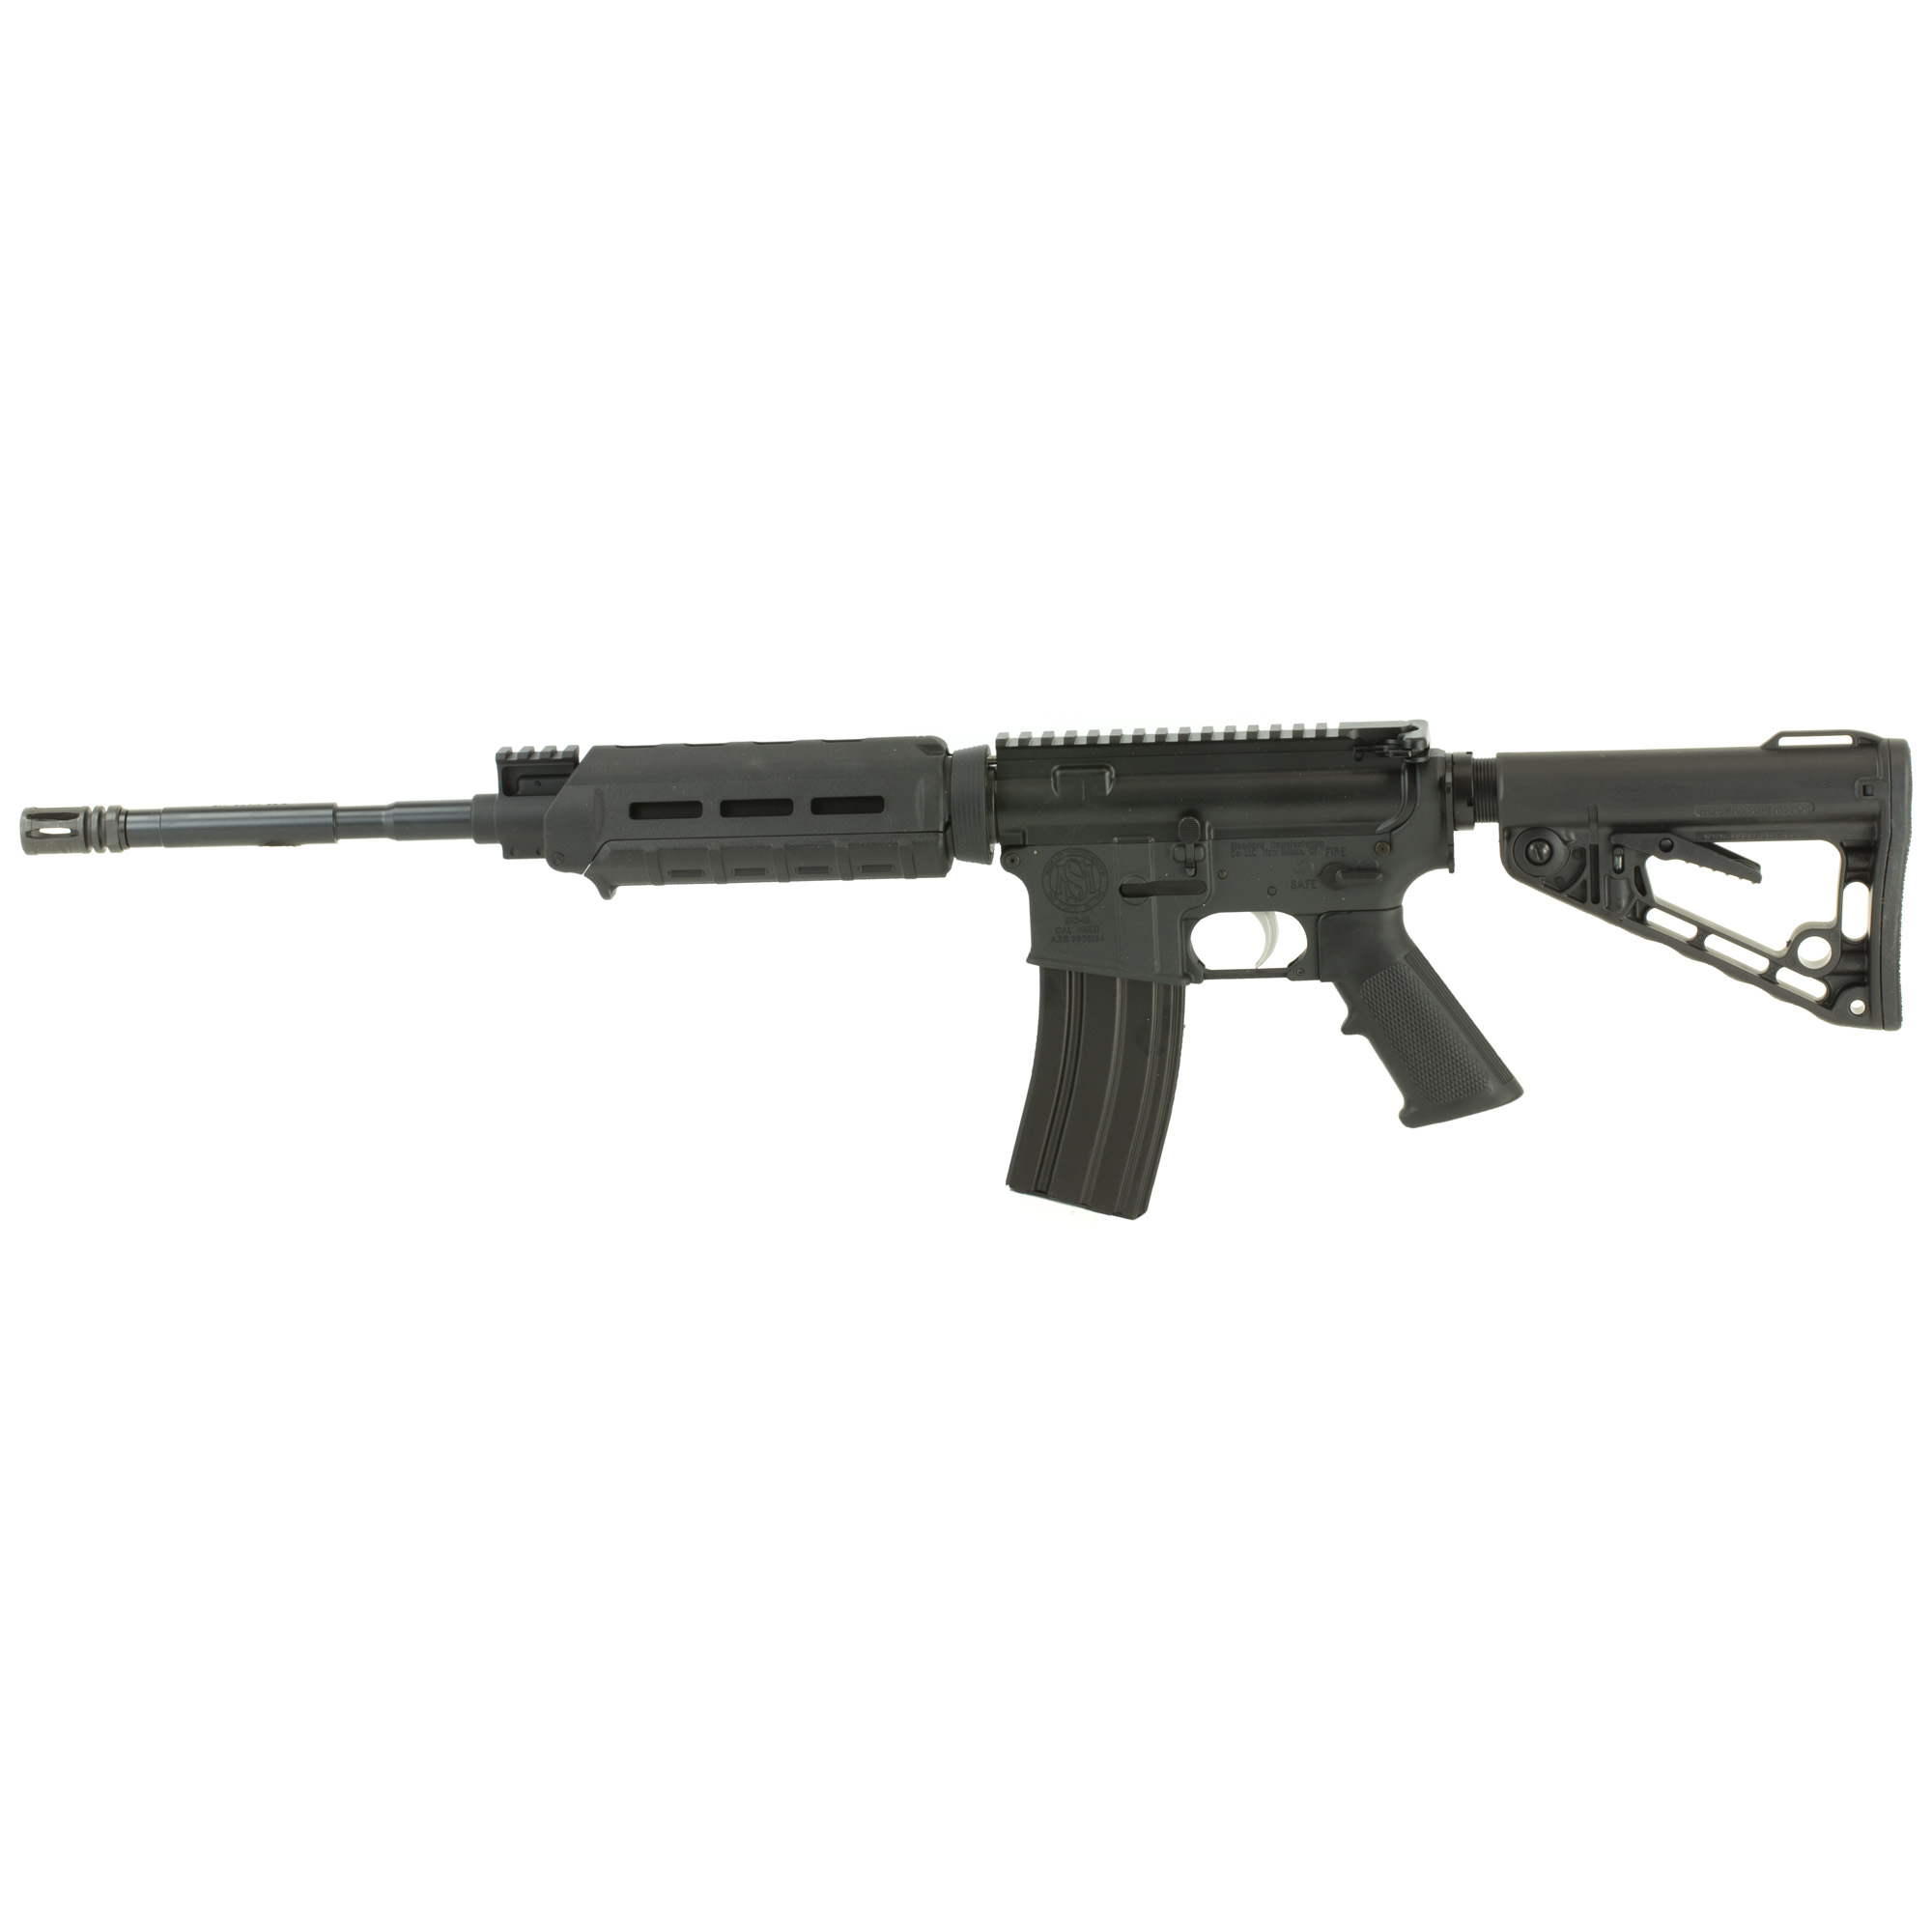 The Standard Model A is an optics ready carbine that is equipped with a Picatinny rail-height gas block for the option to install iron sights. This model has 4150 CMV (Chrome Moly Vanadium) barrel chambered in 5.56 NATO. The Model A also features a Standard Manufacturing-branded Roger's Super-Stoc buttstock and a Magpul hand guard that will accept a variety of M-LOK accessories.